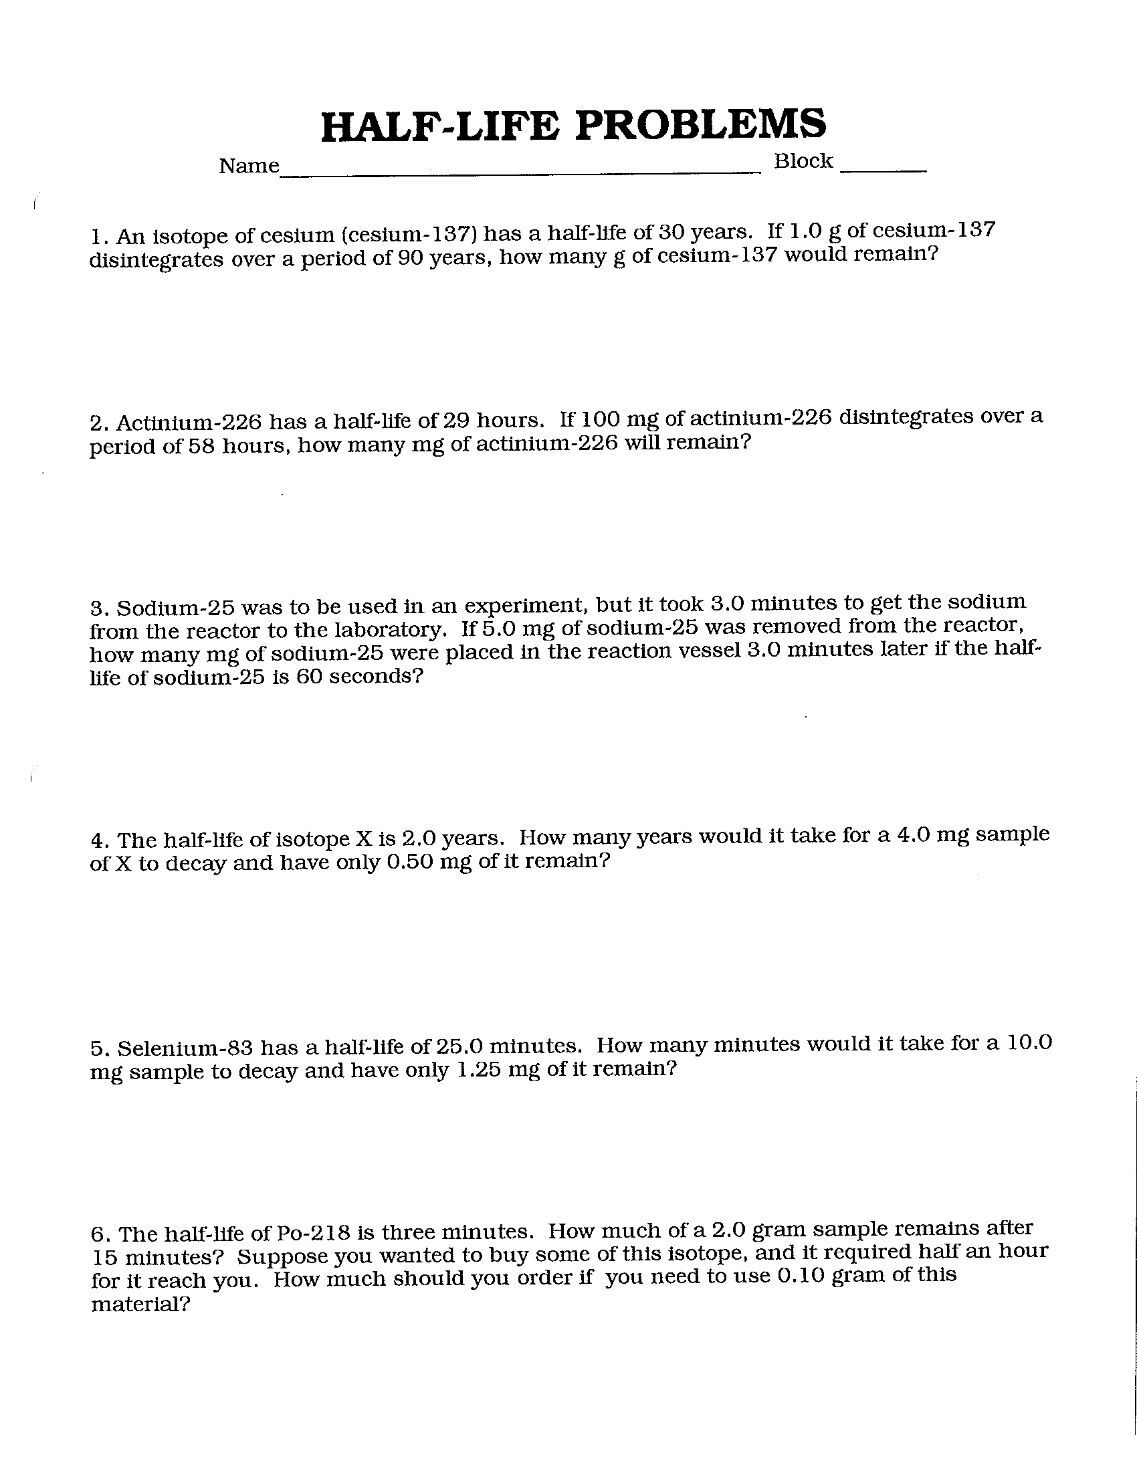 Uncategorized Half Life Problems Worksheet worksheet half life problems fiercebad and pdf at vestavia hills high school period instructions complete the following show all work 1 an isoto